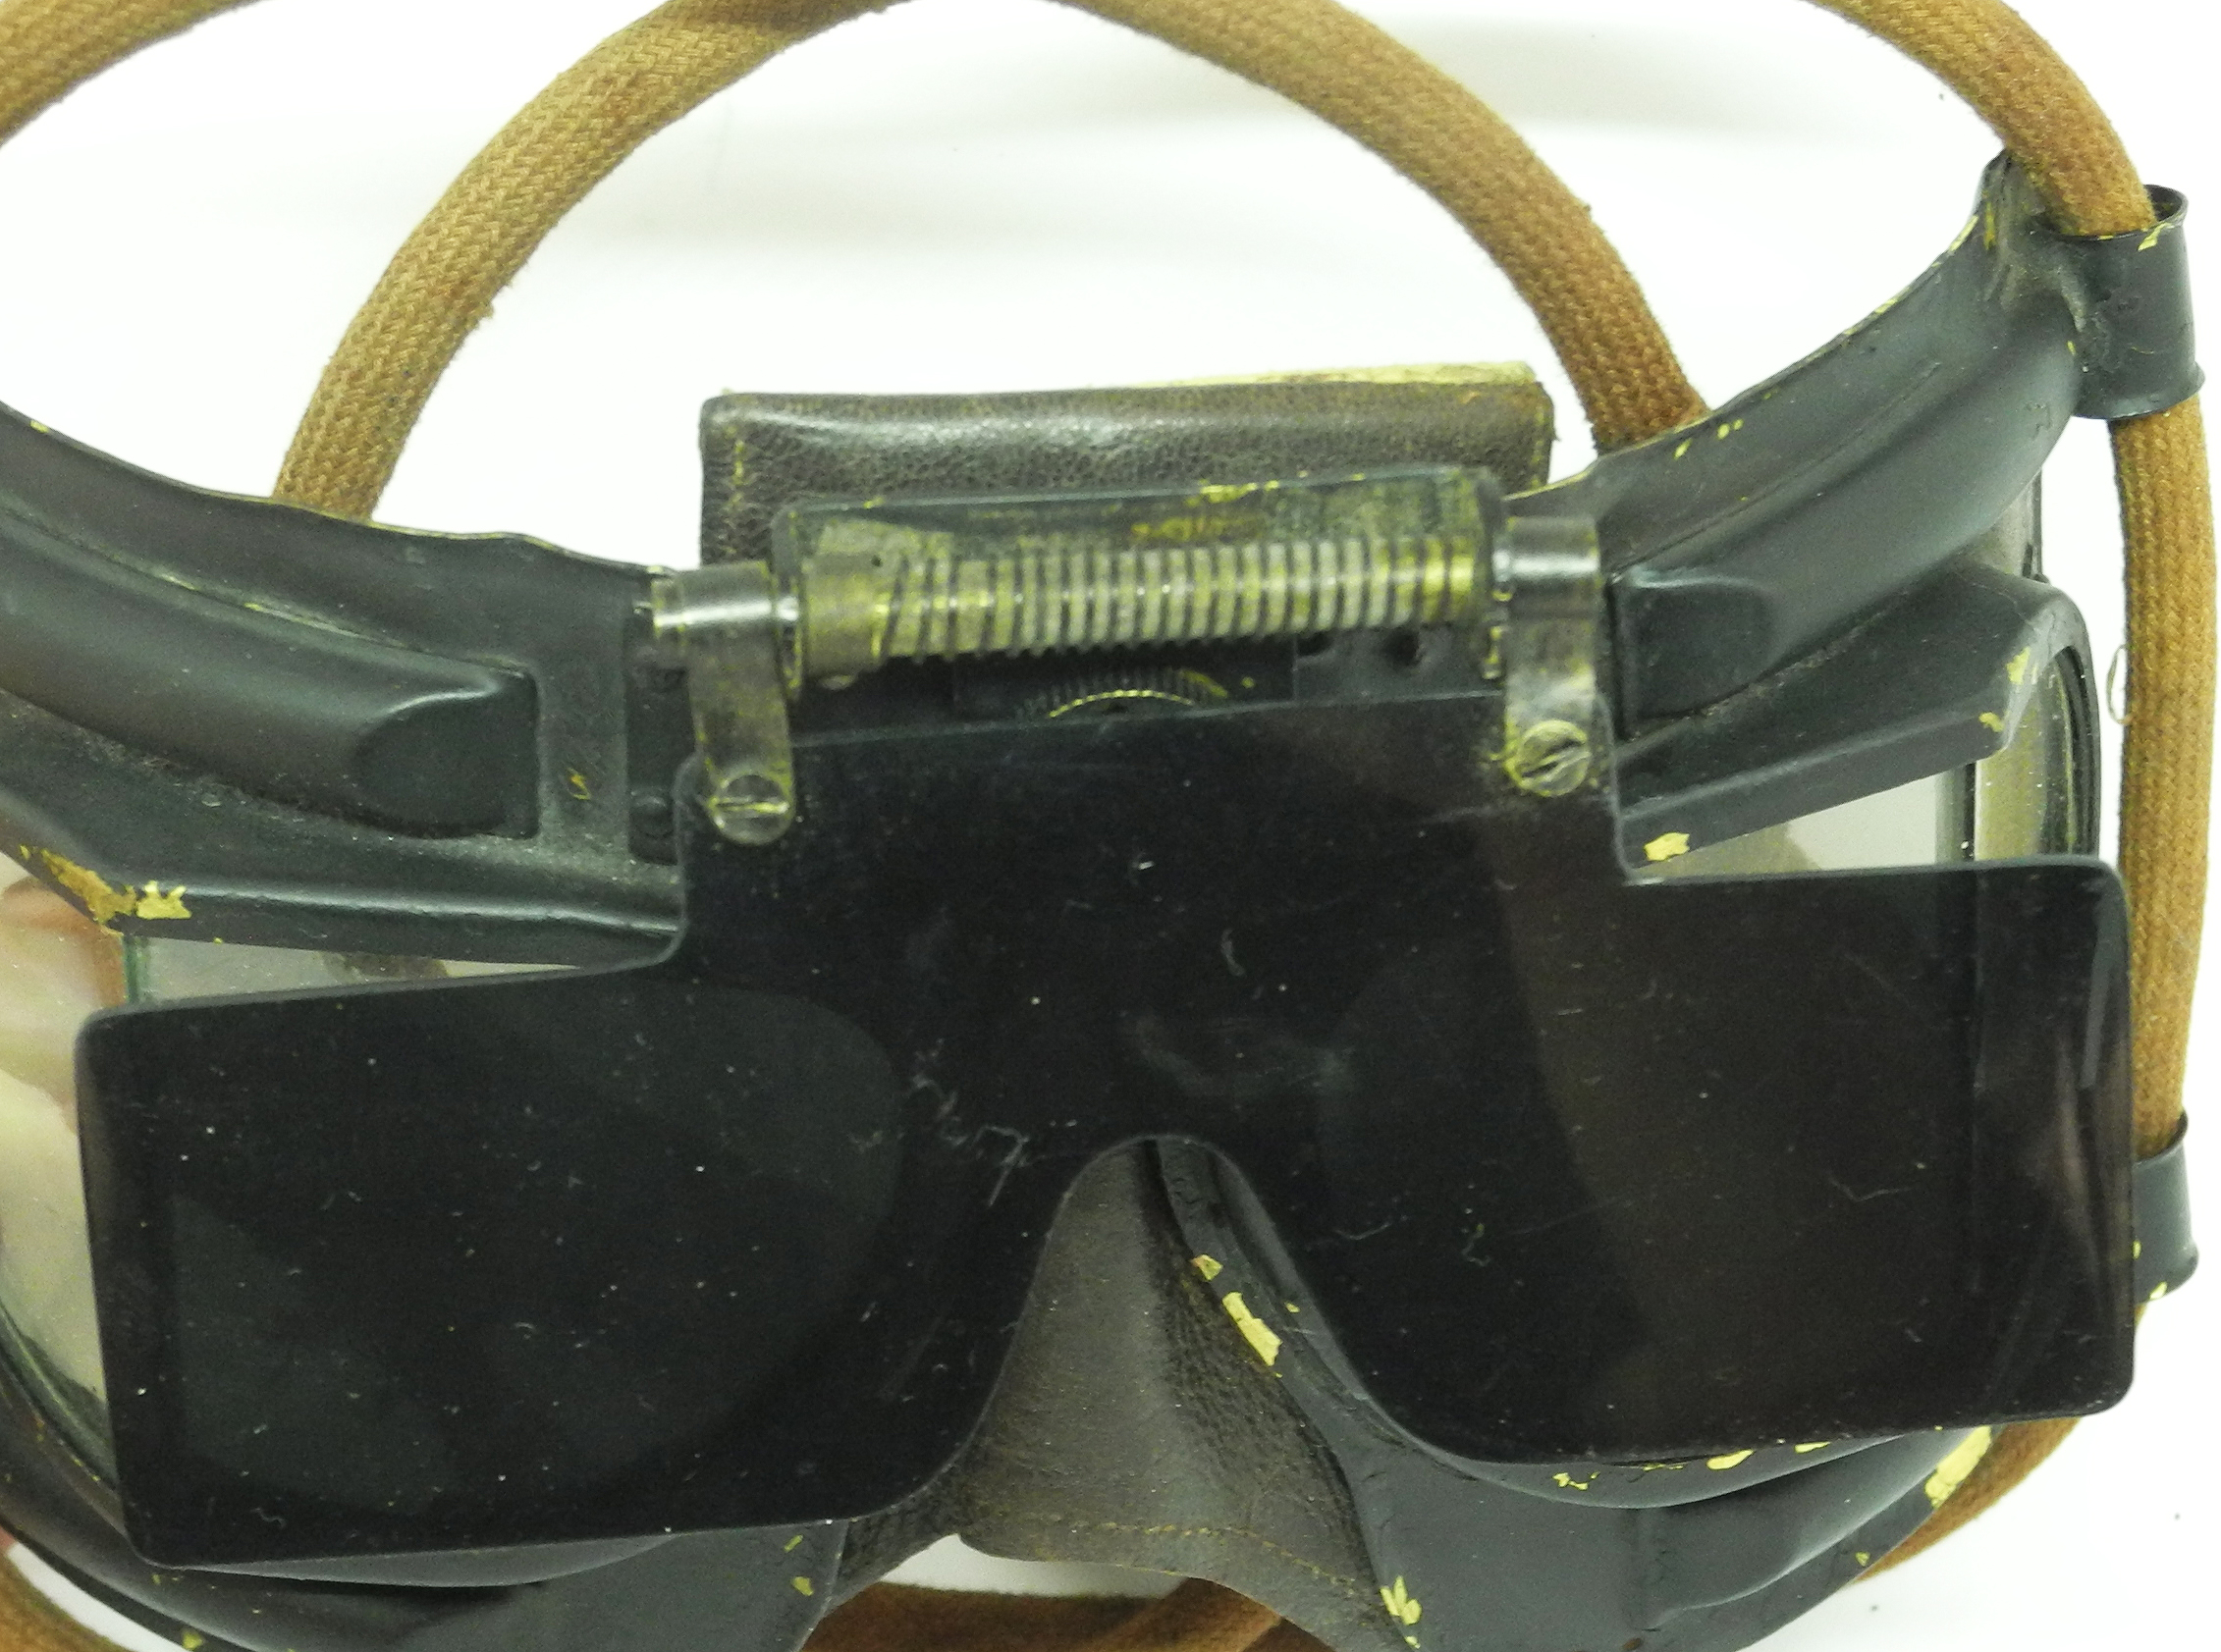 RAF Mk IVB goggles with flip screen